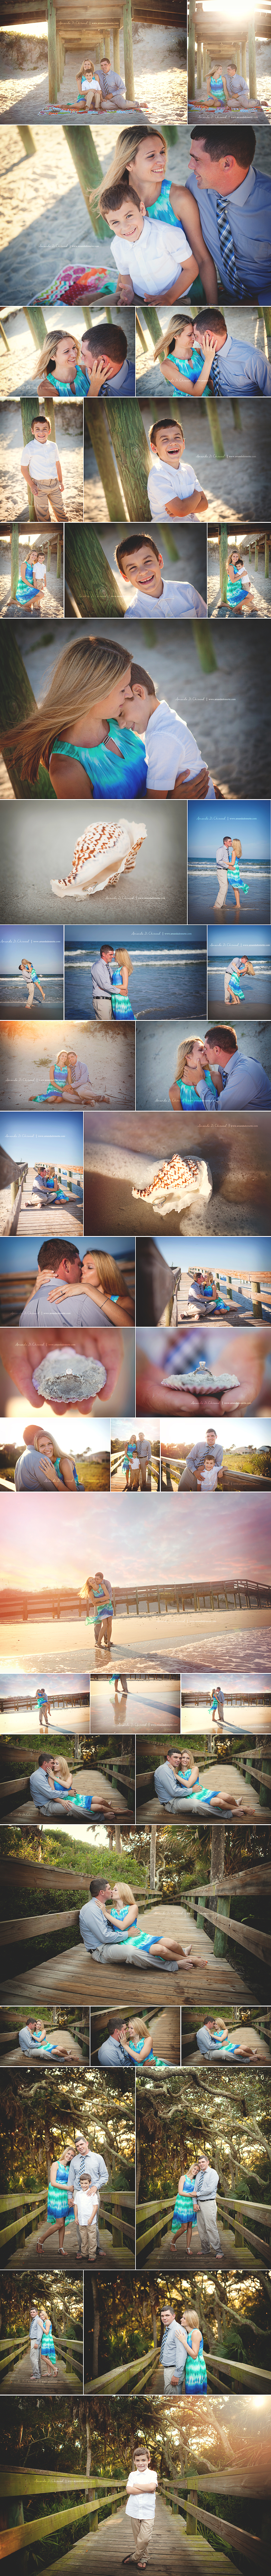 Jacksonville Beach, FL Engagement Photographer